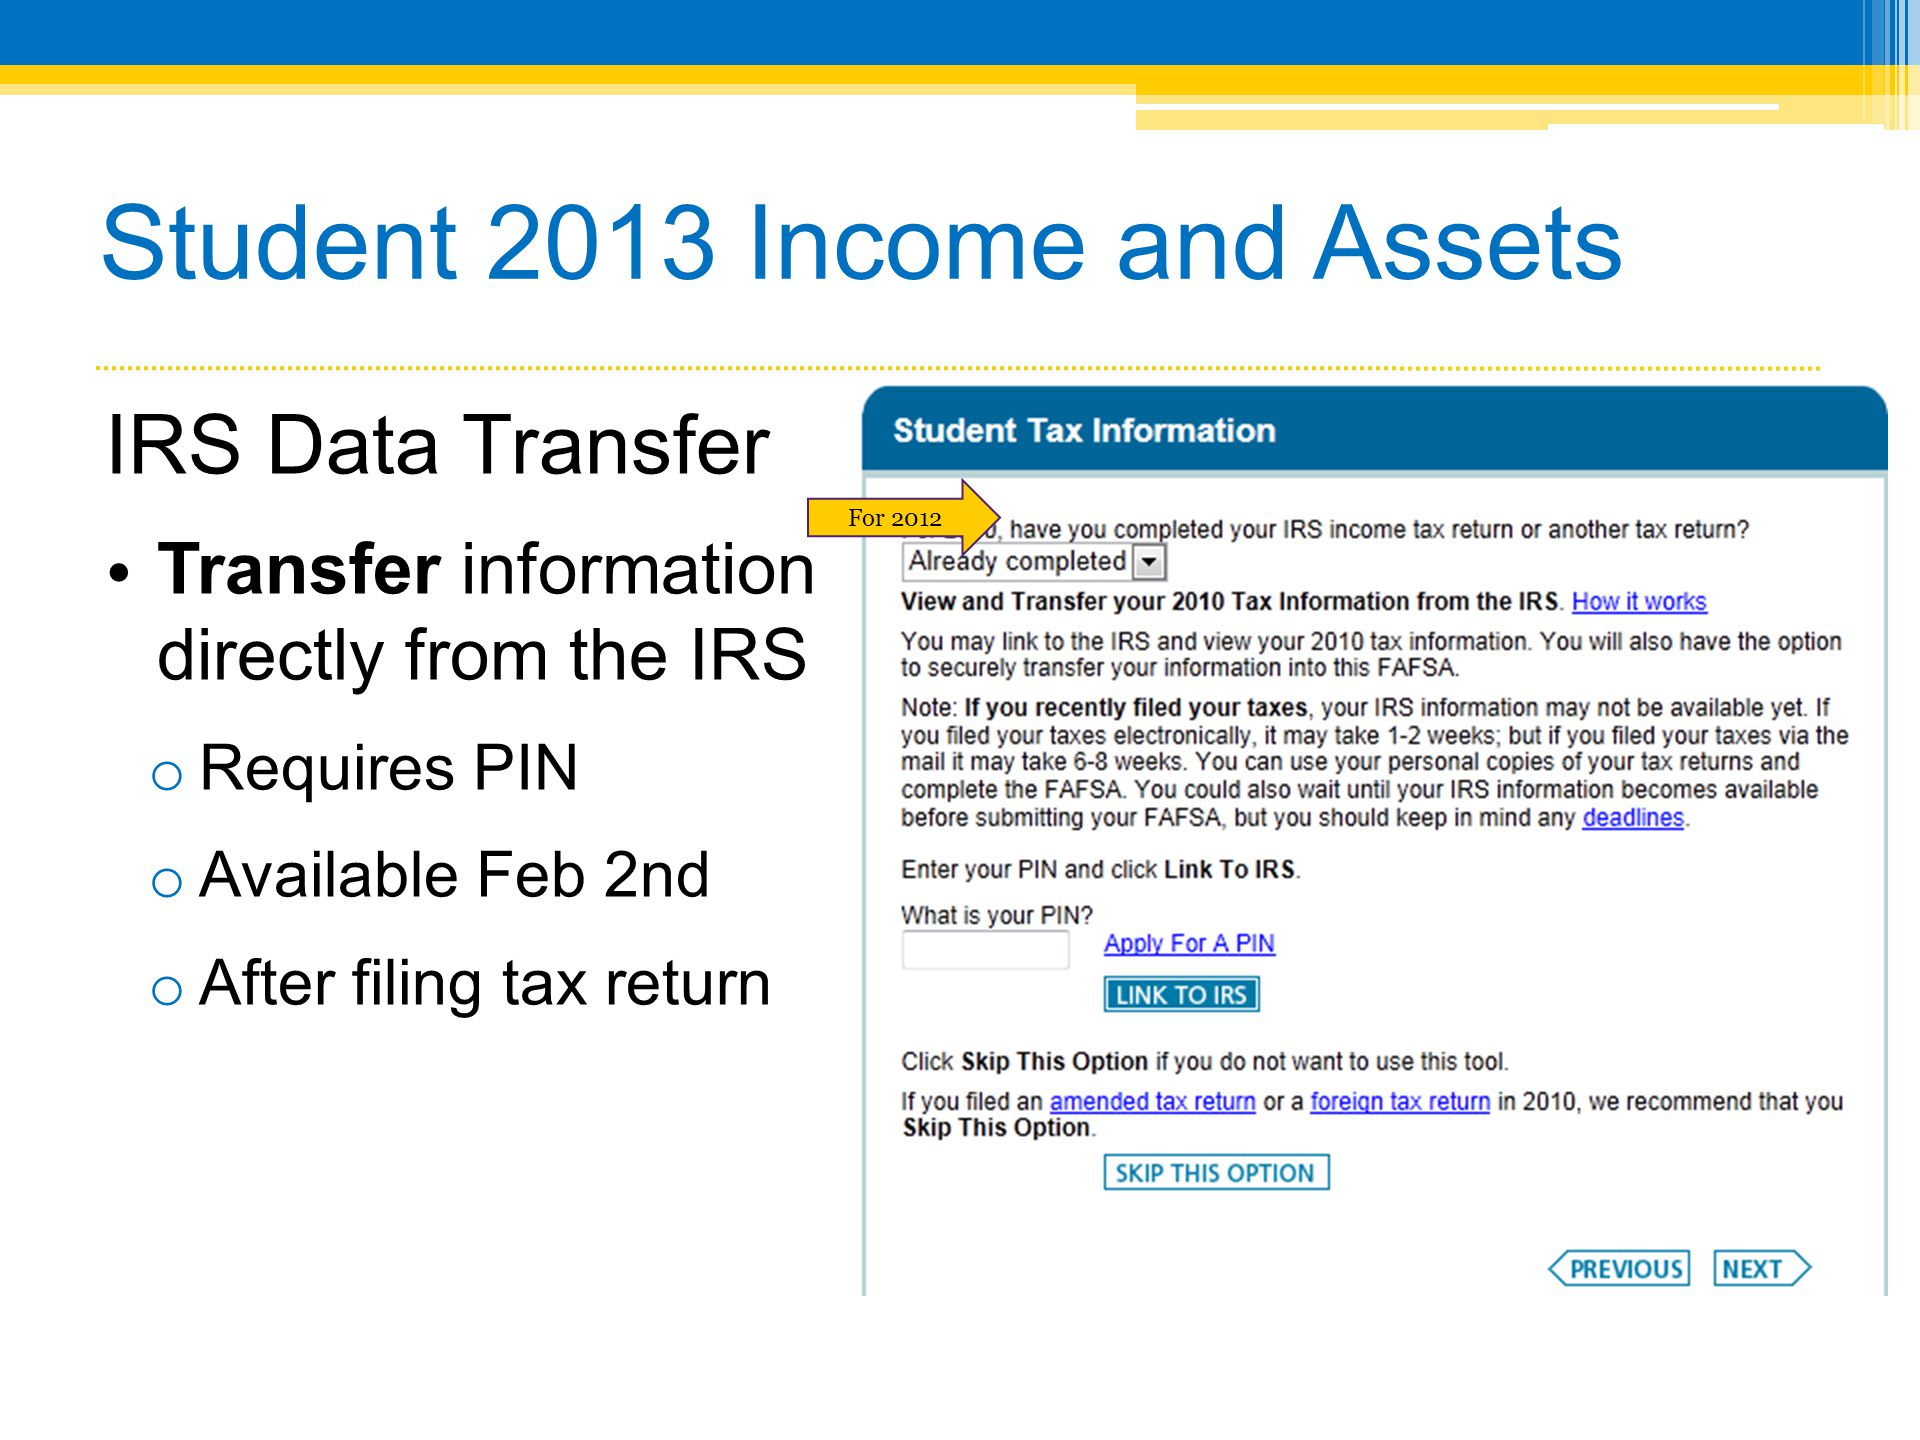 Student 2013 Income and Assets IRS Data Transfer Transfer information directly from the IRS o Requires PIN o Available Feb 2nd o After filing tax return For 2012